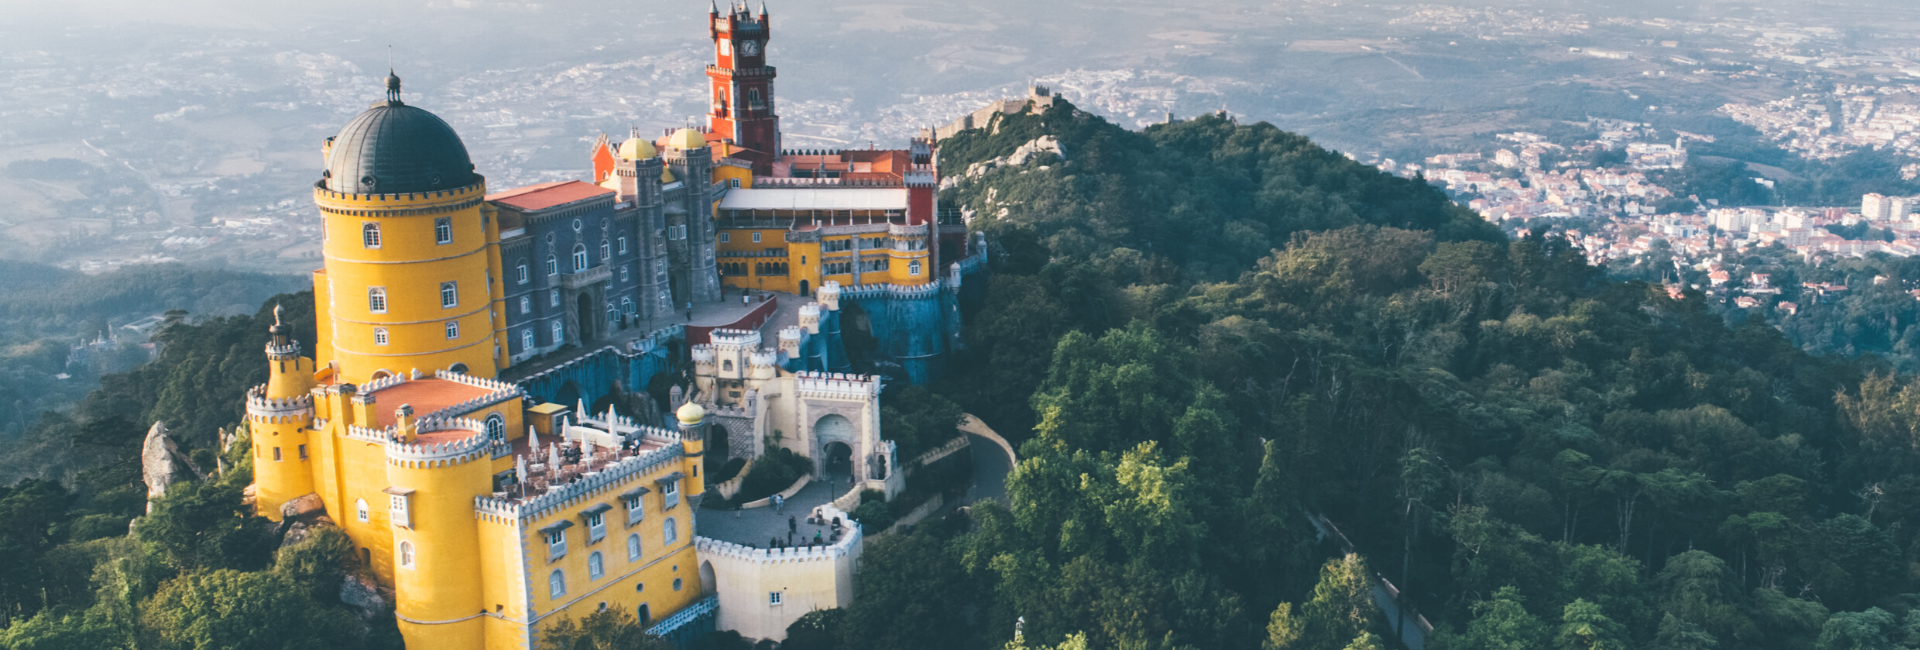 Pena Palace, one of the most unique castles in Europe